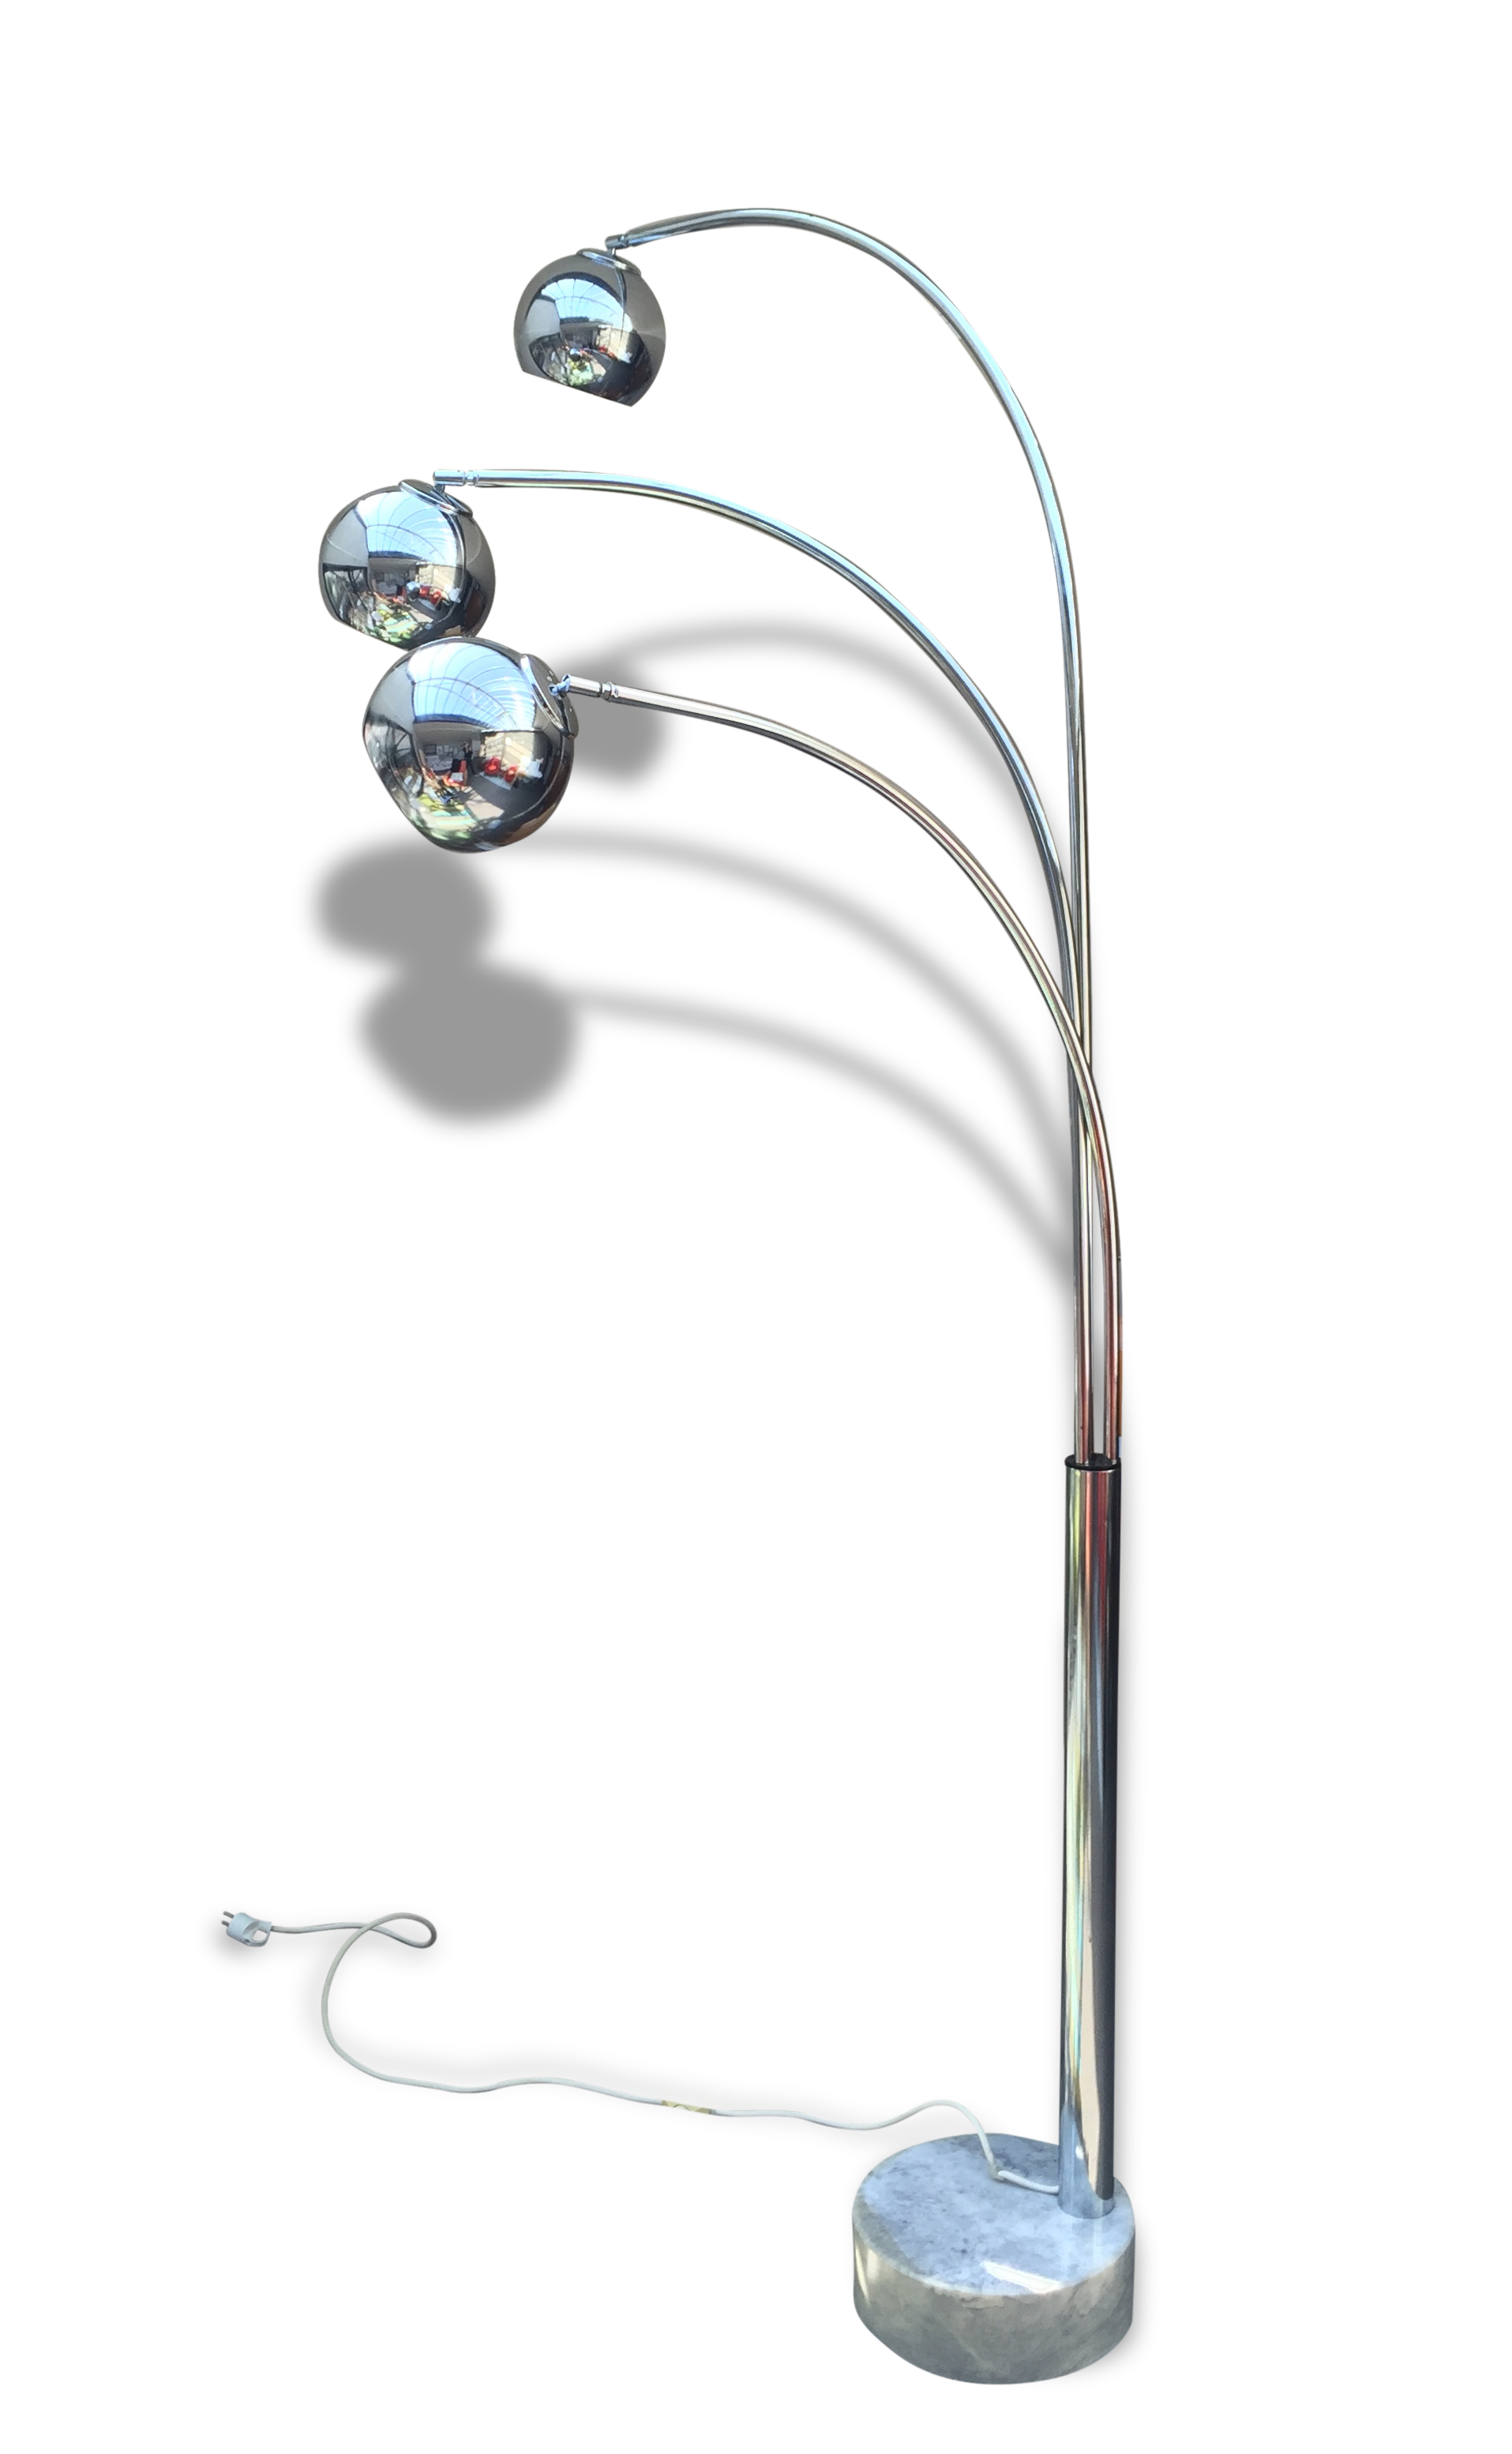 lampadaire annees 70 - 3 tiges a boules chromees